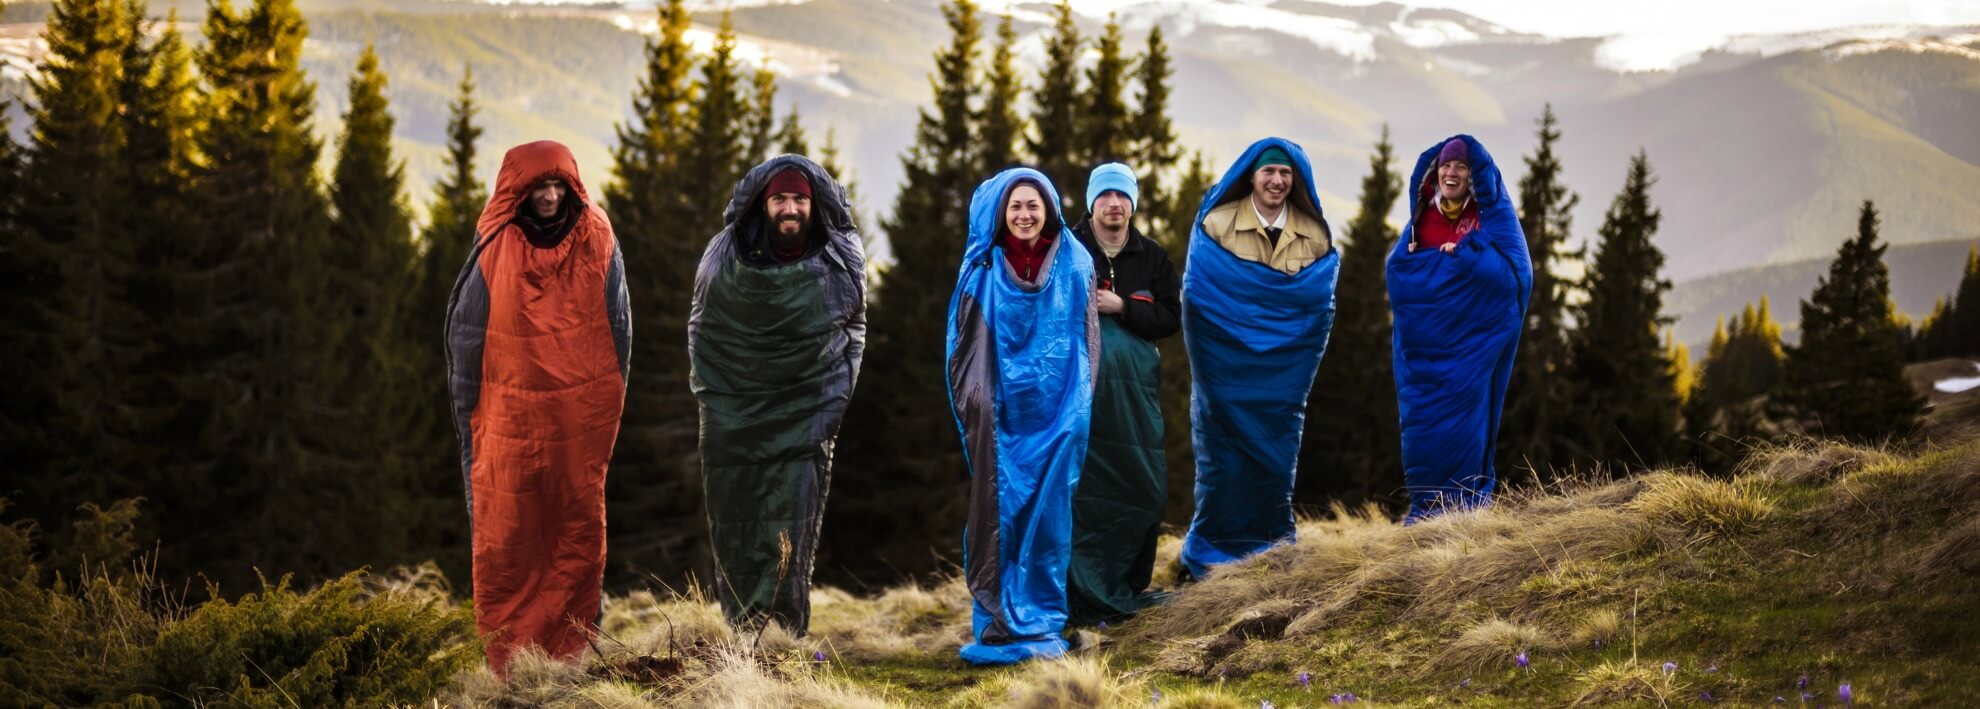 Group of friends in sleeping bags